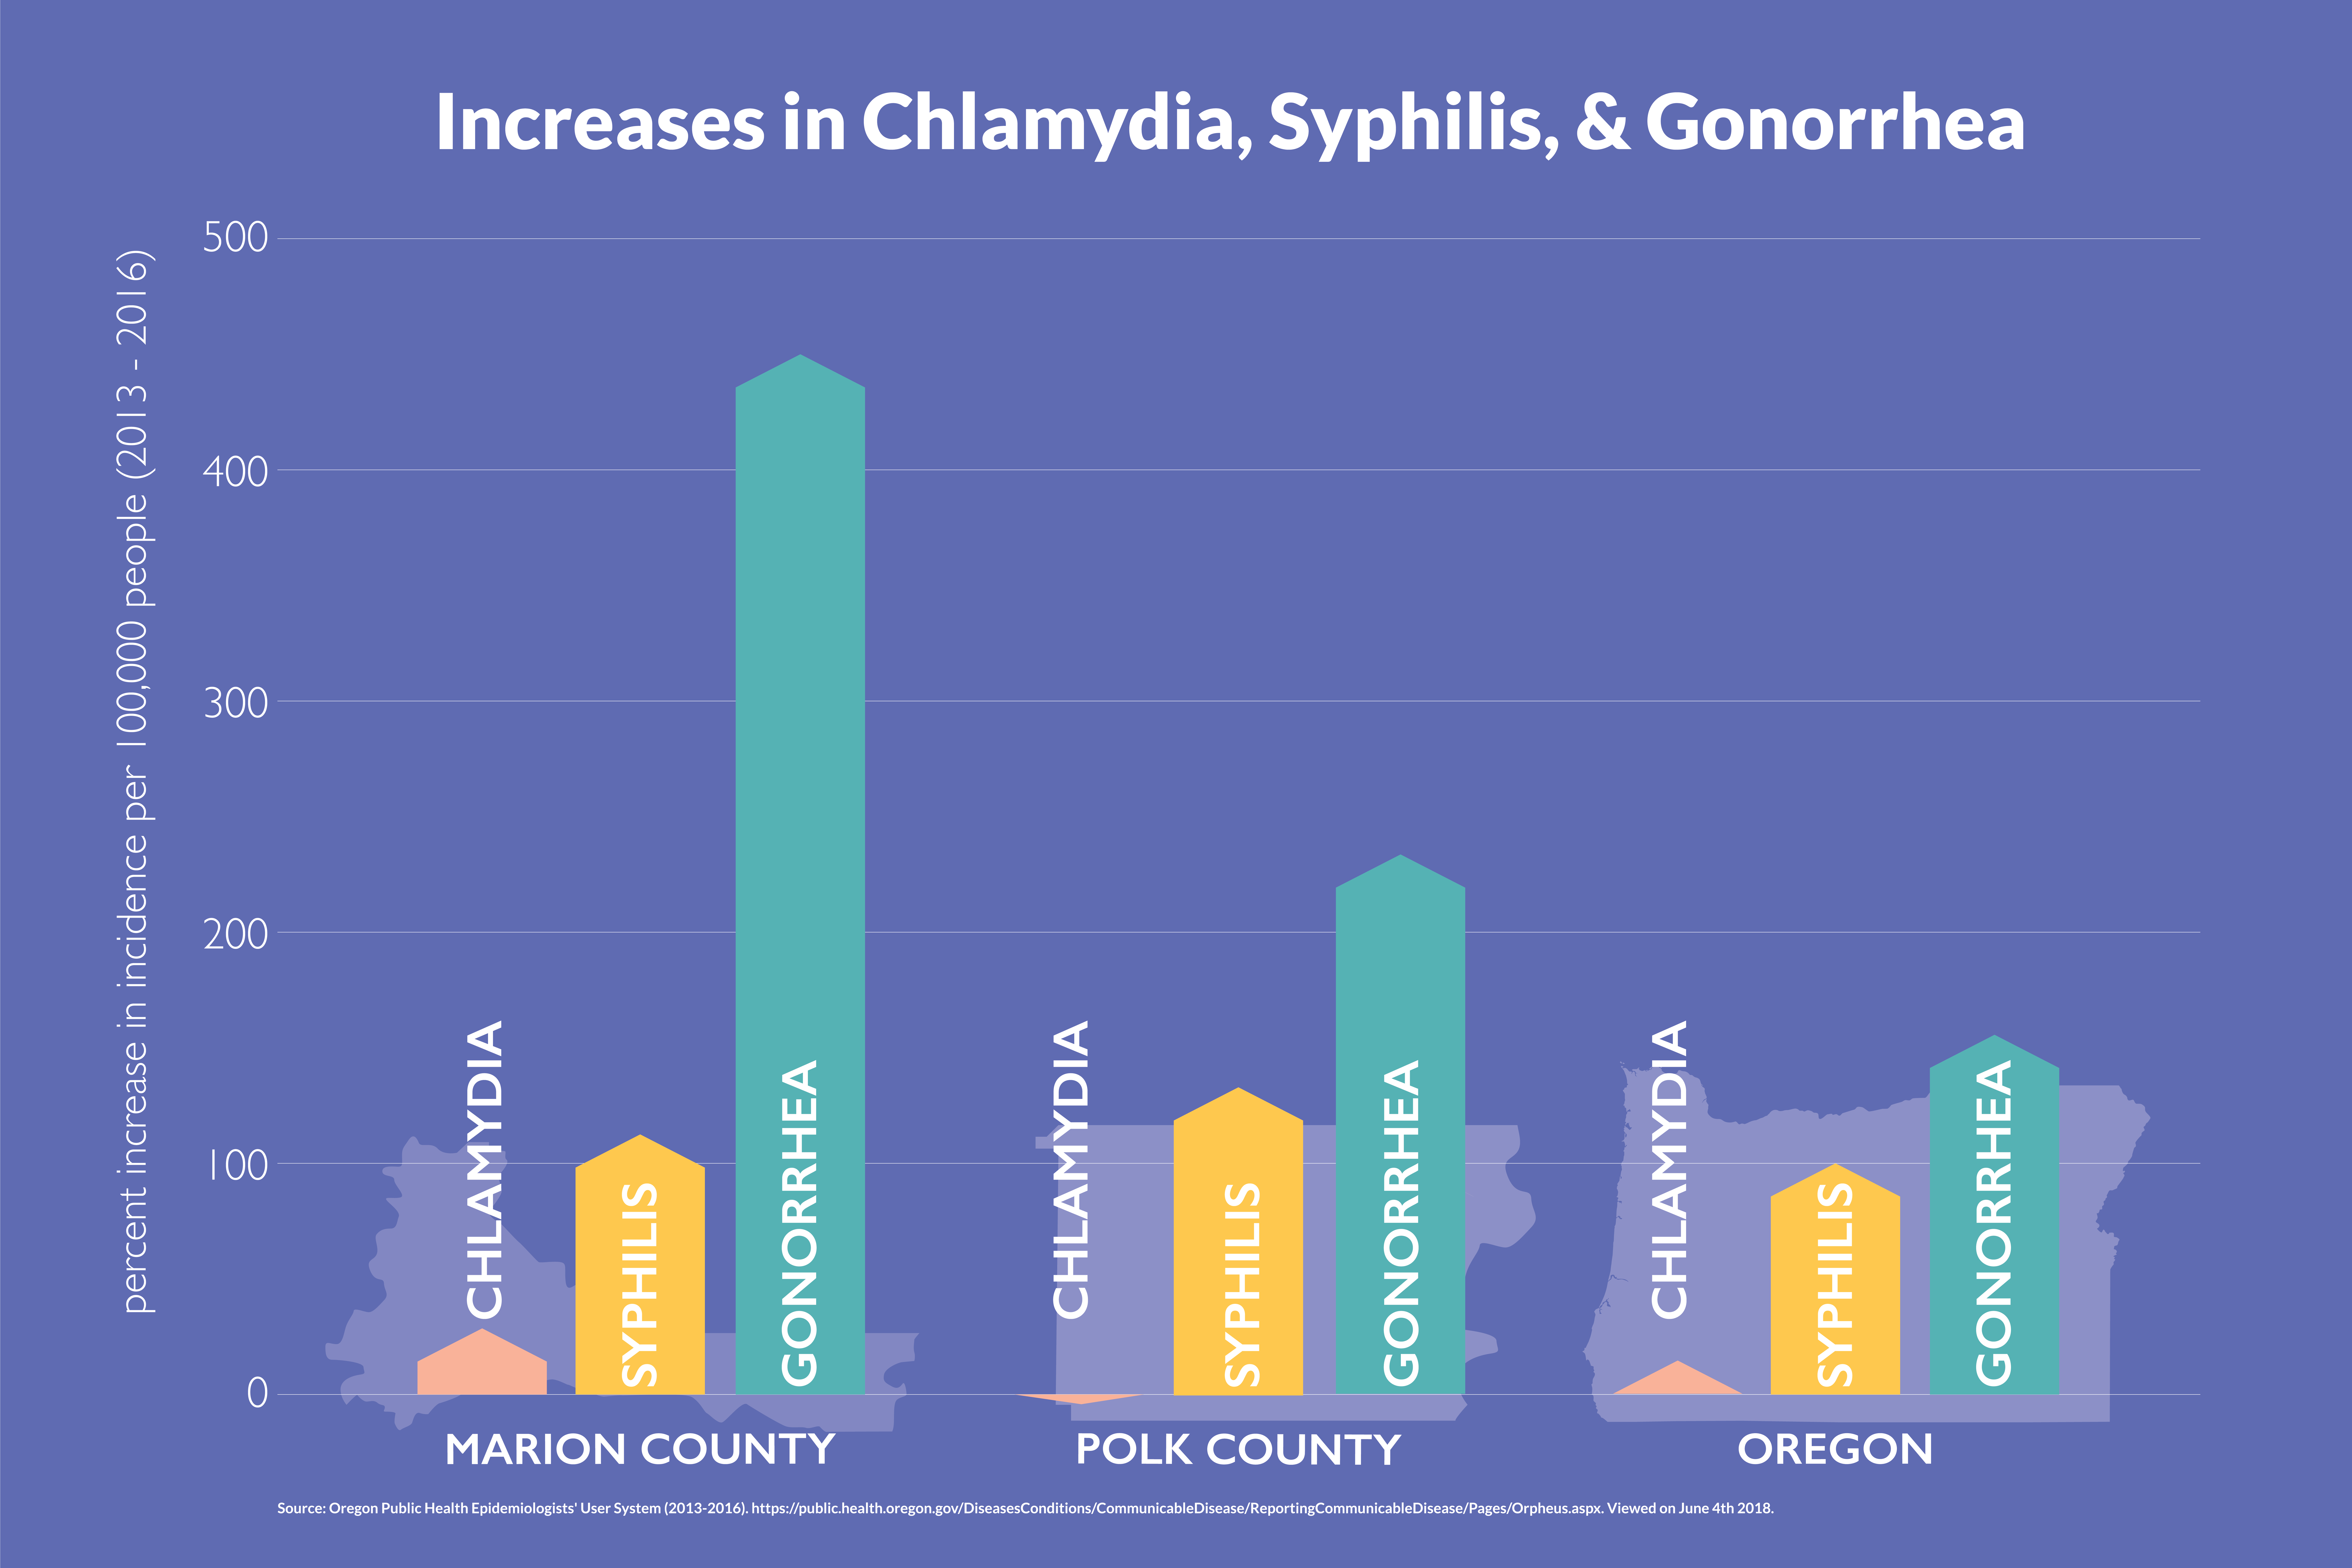 Increases in Chlamydia Syphilis and Gonorrhea